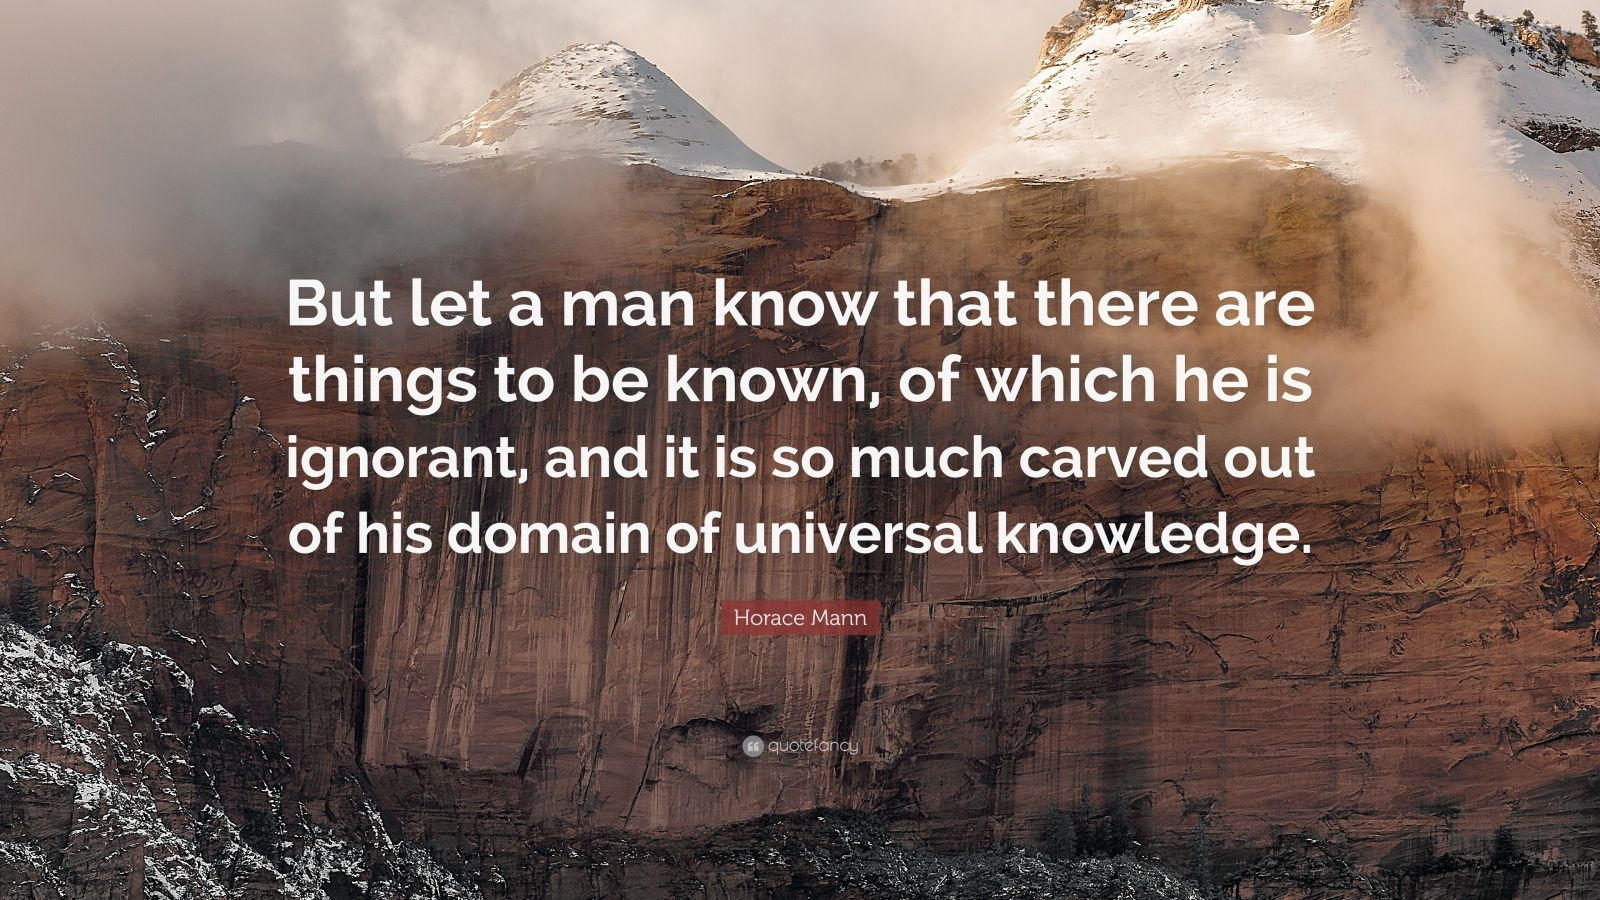 """Horace Mann Quote: """"But let a man know that there are things to be known, of which he is ignorant, and it is so much carved out of his domain of universal knowledge."""""""